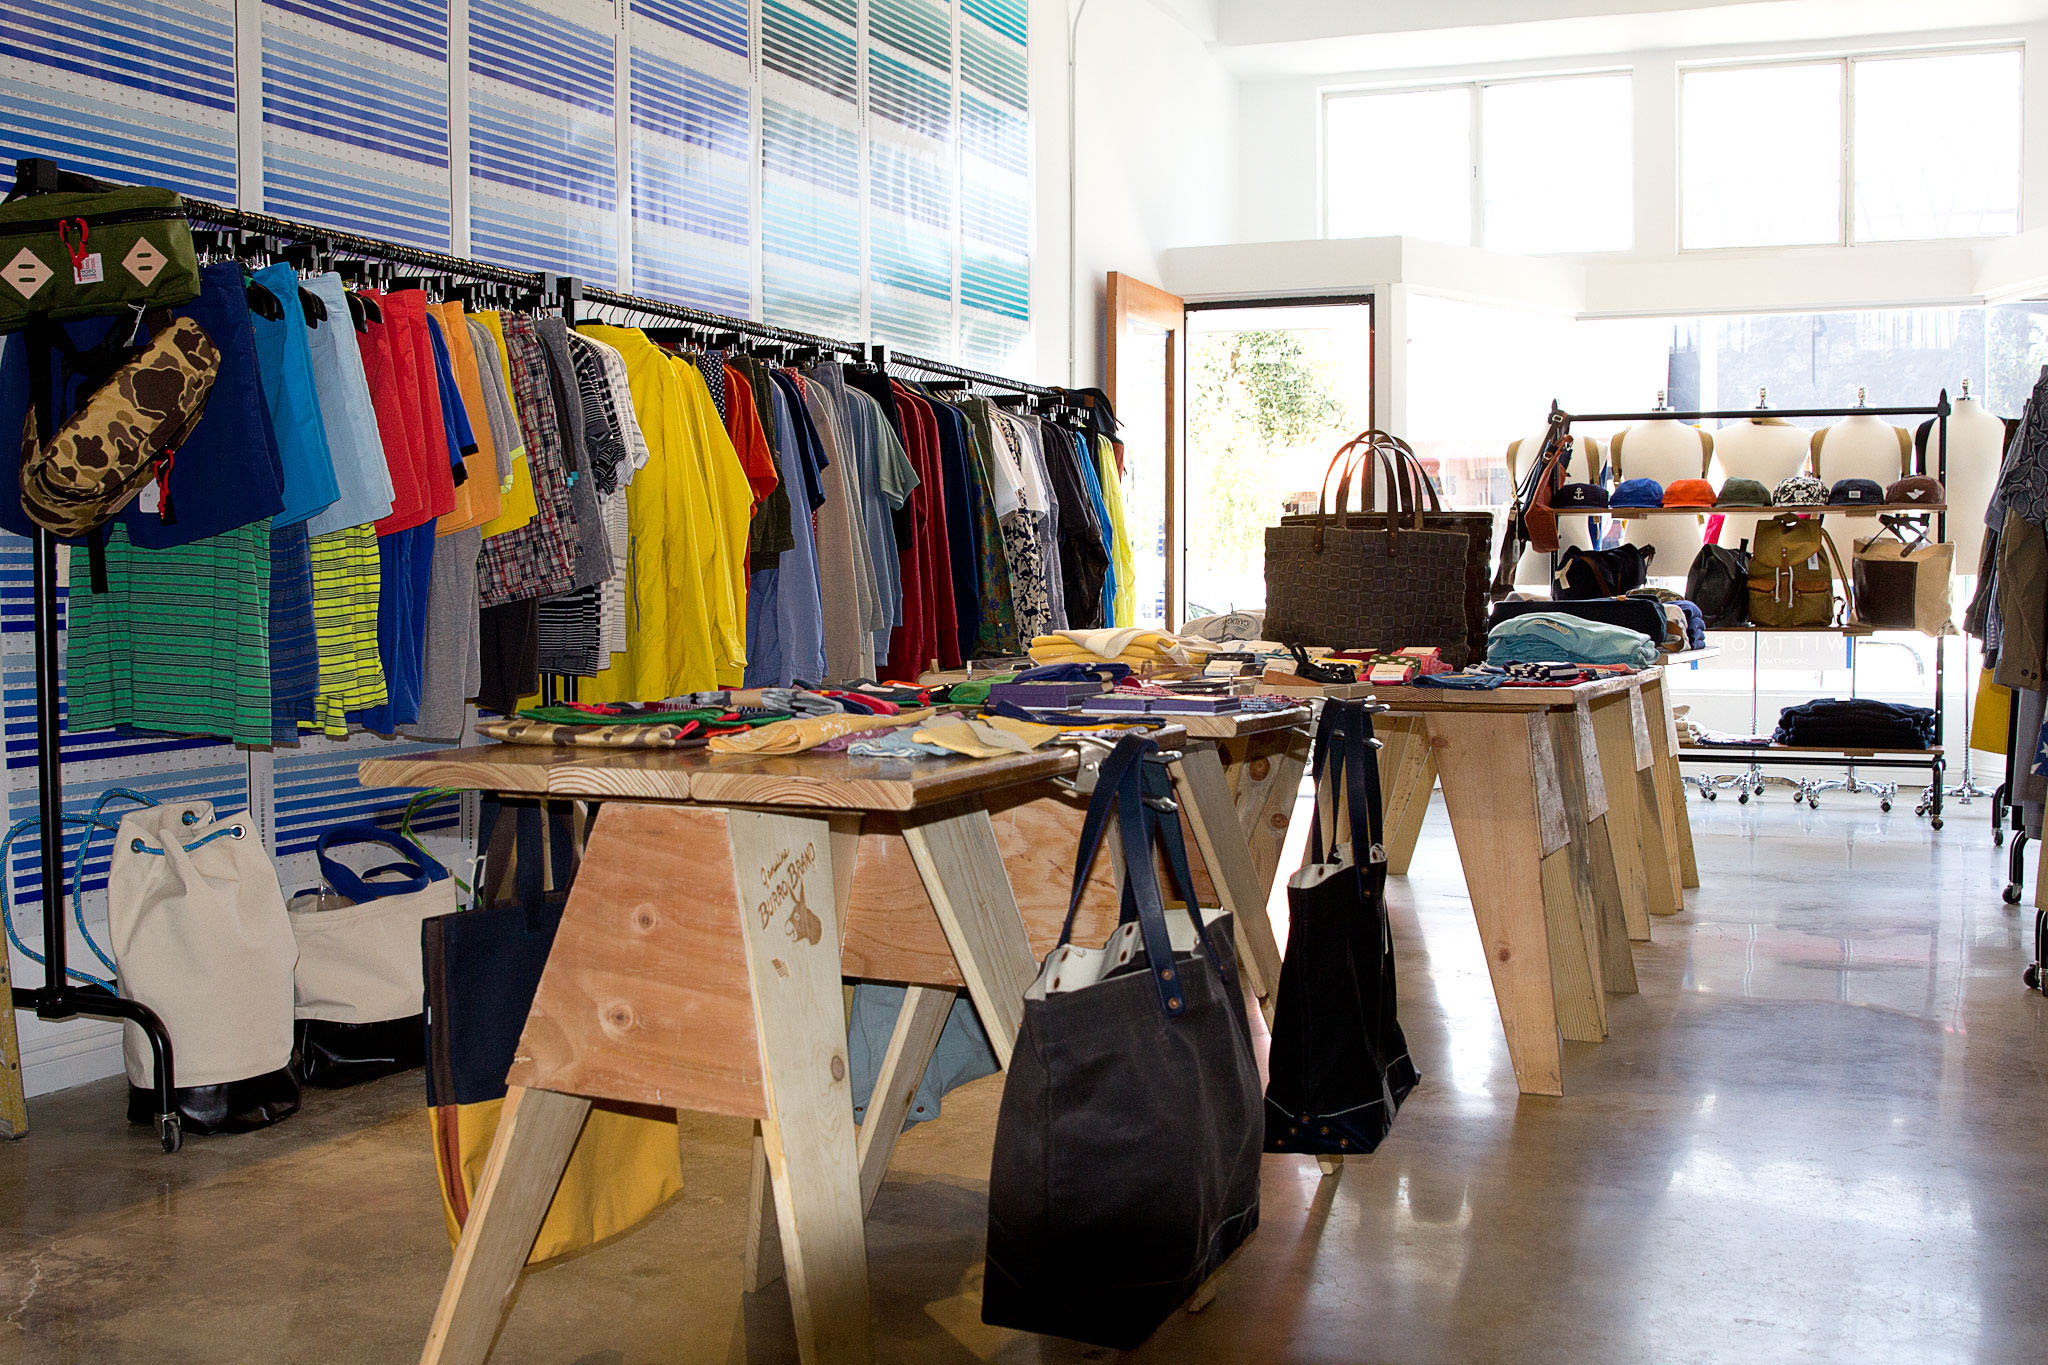 Wittmore pop up shop west hollywood Los Angeles Exterior Interior Concept 8366 1/2